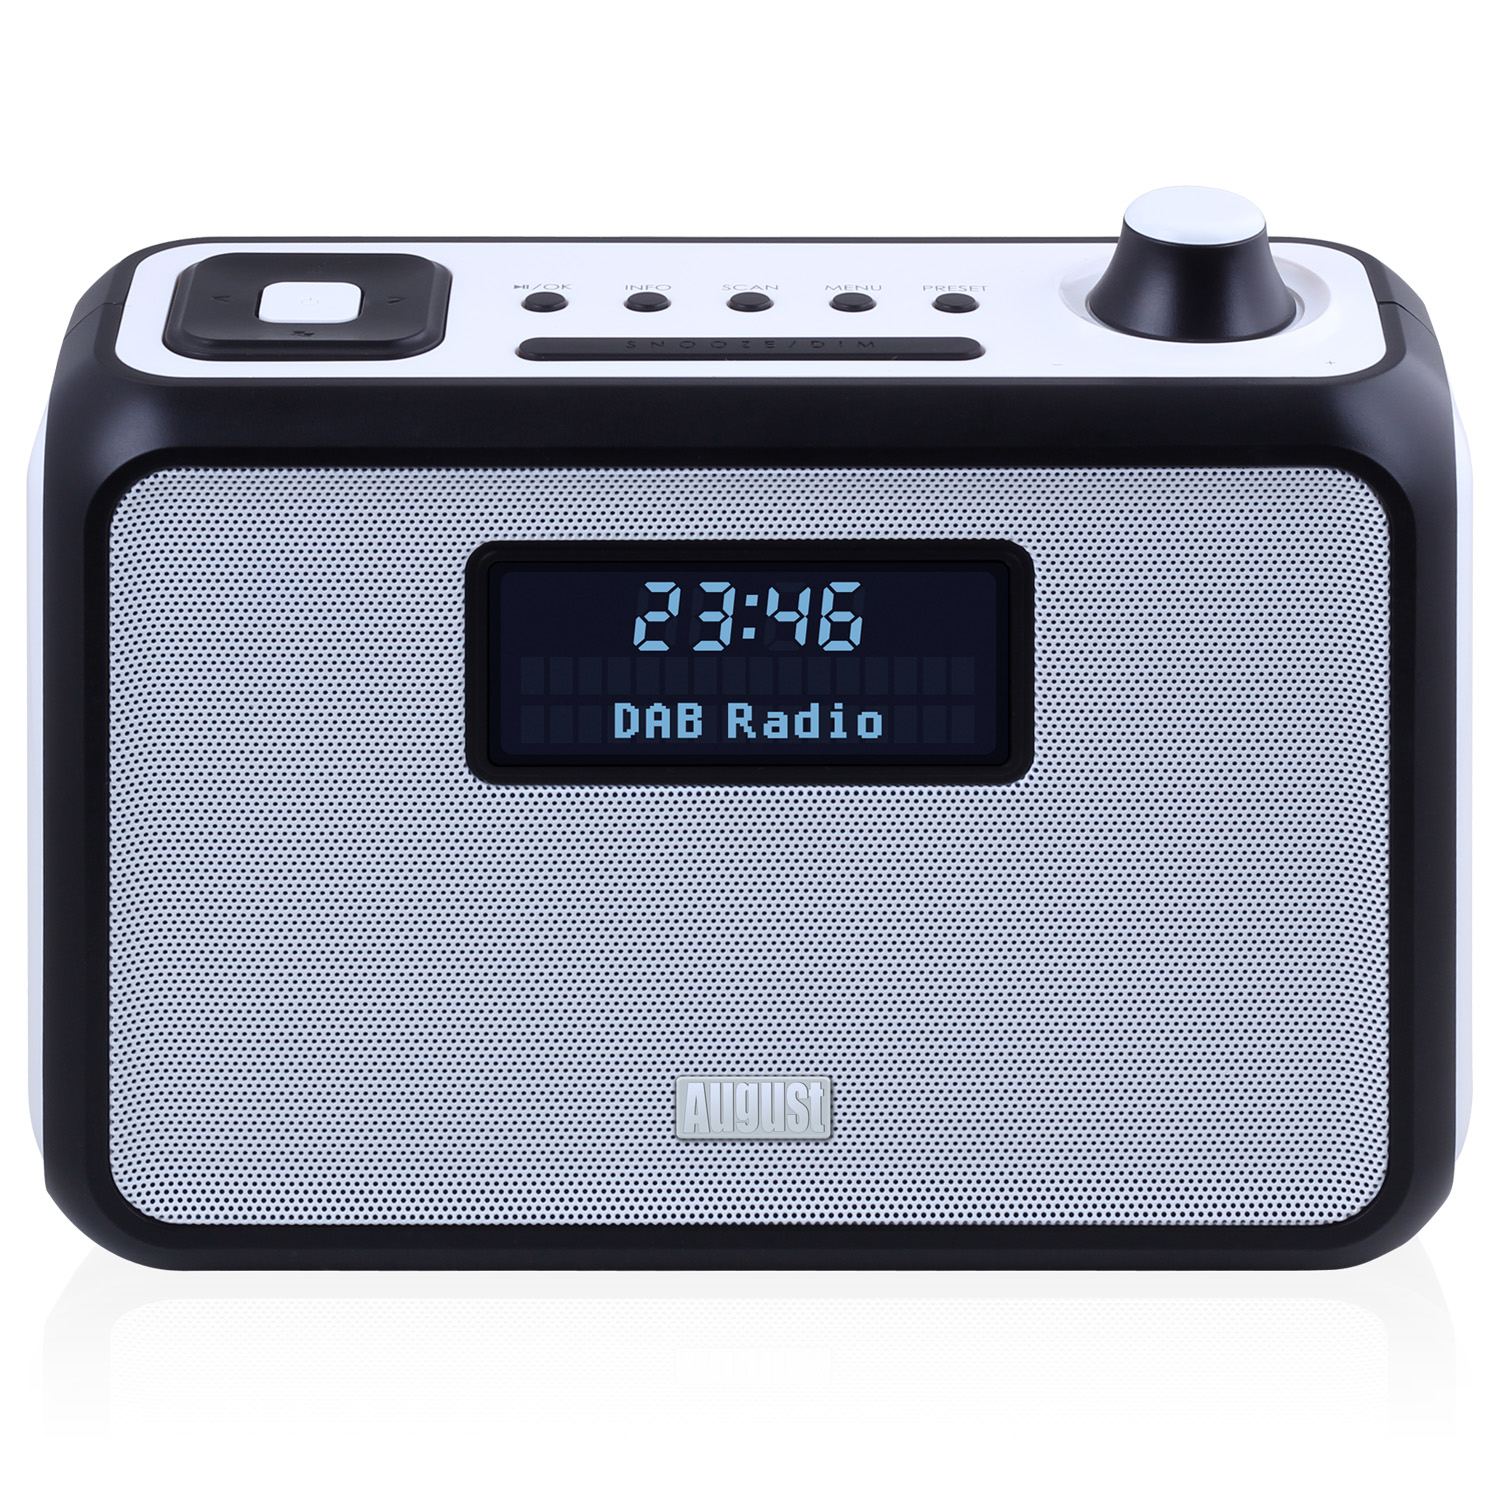 DAB Radio with Bluetooth Speaker - Black